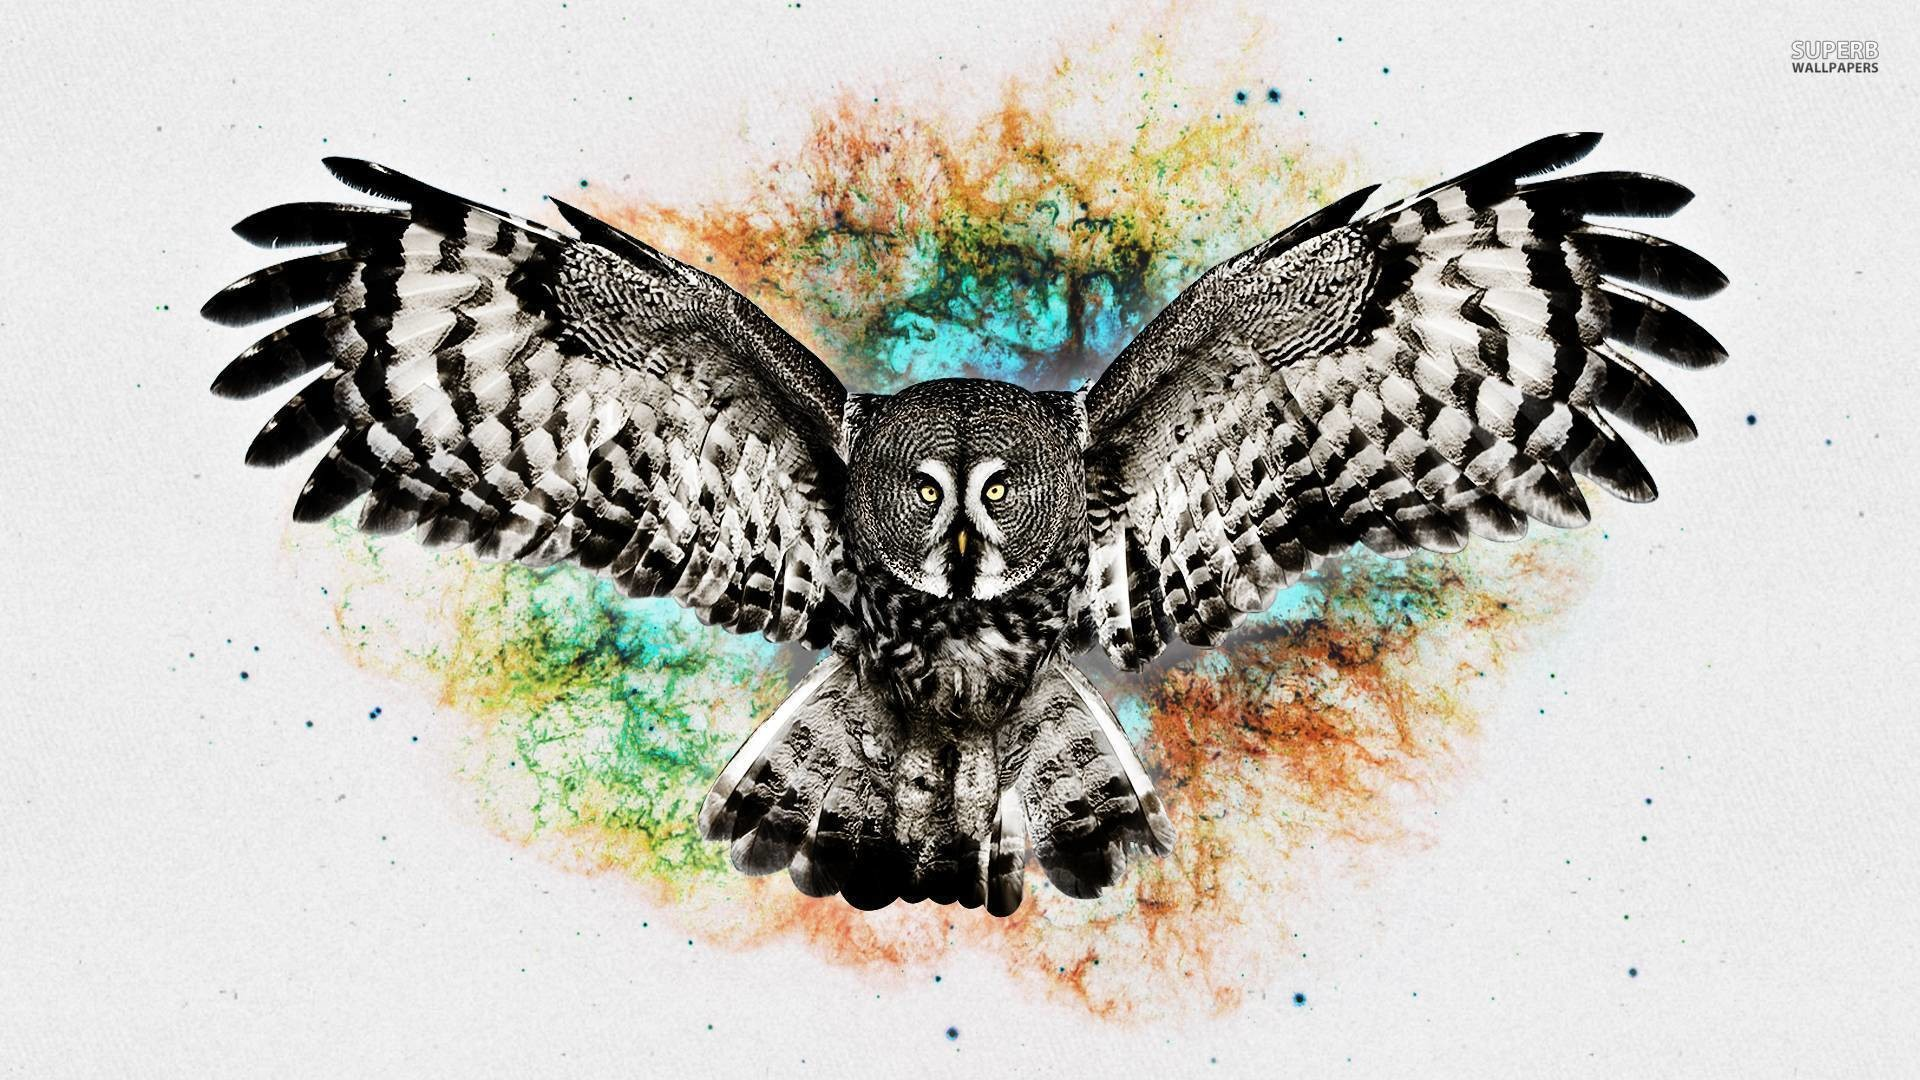 1920x1080 Owl wallpaper - Digital Art wallpapers - #